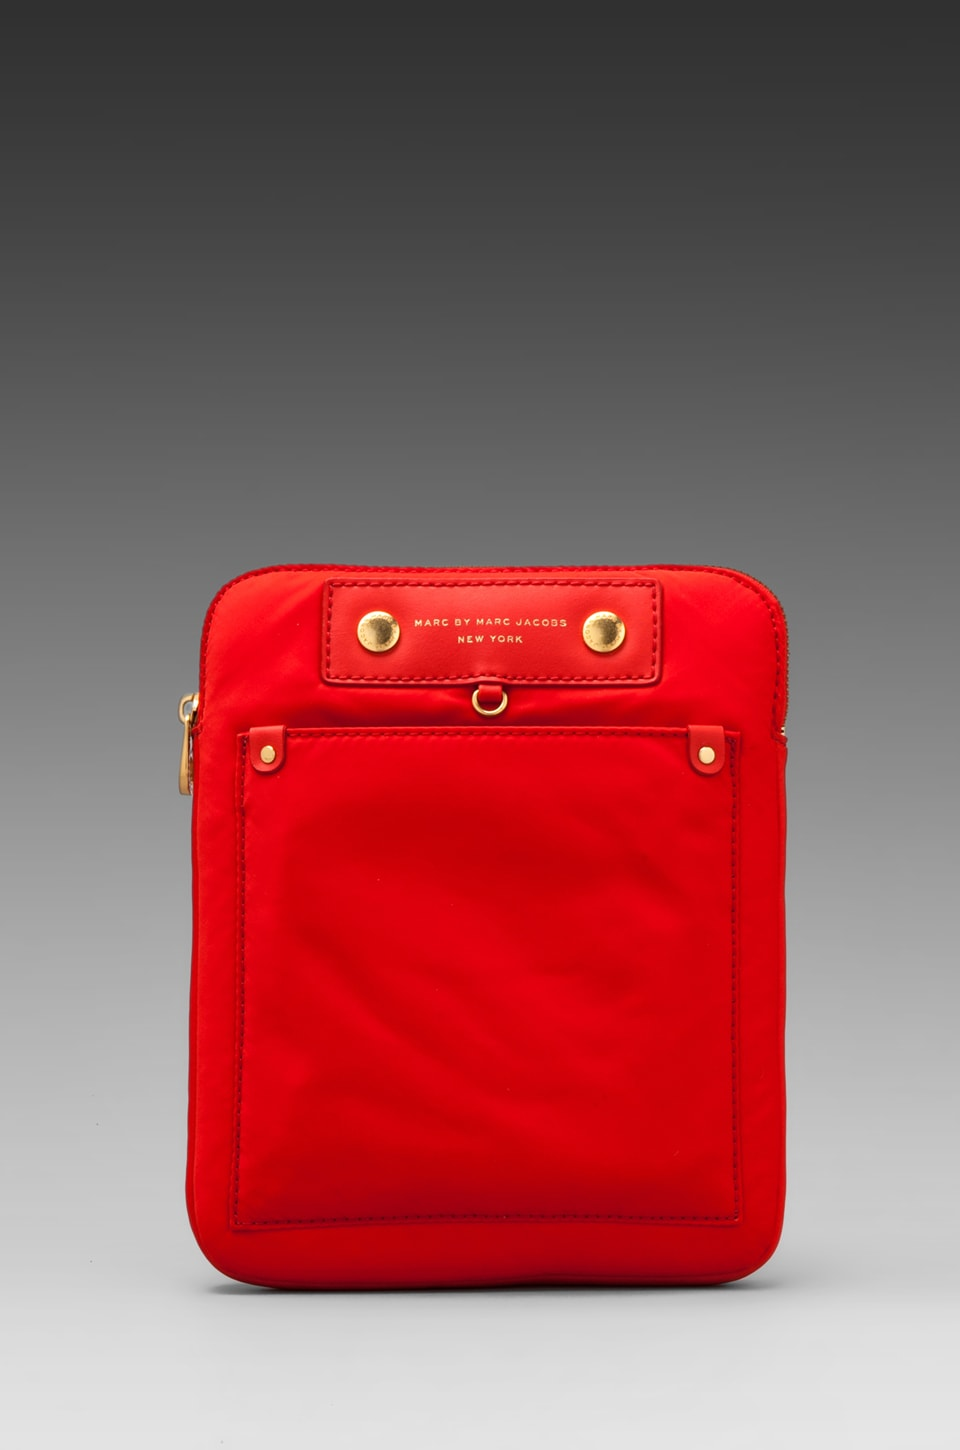 Marc by Marc Jacobs Preppy Nylon Tablet Case in Blaze Red